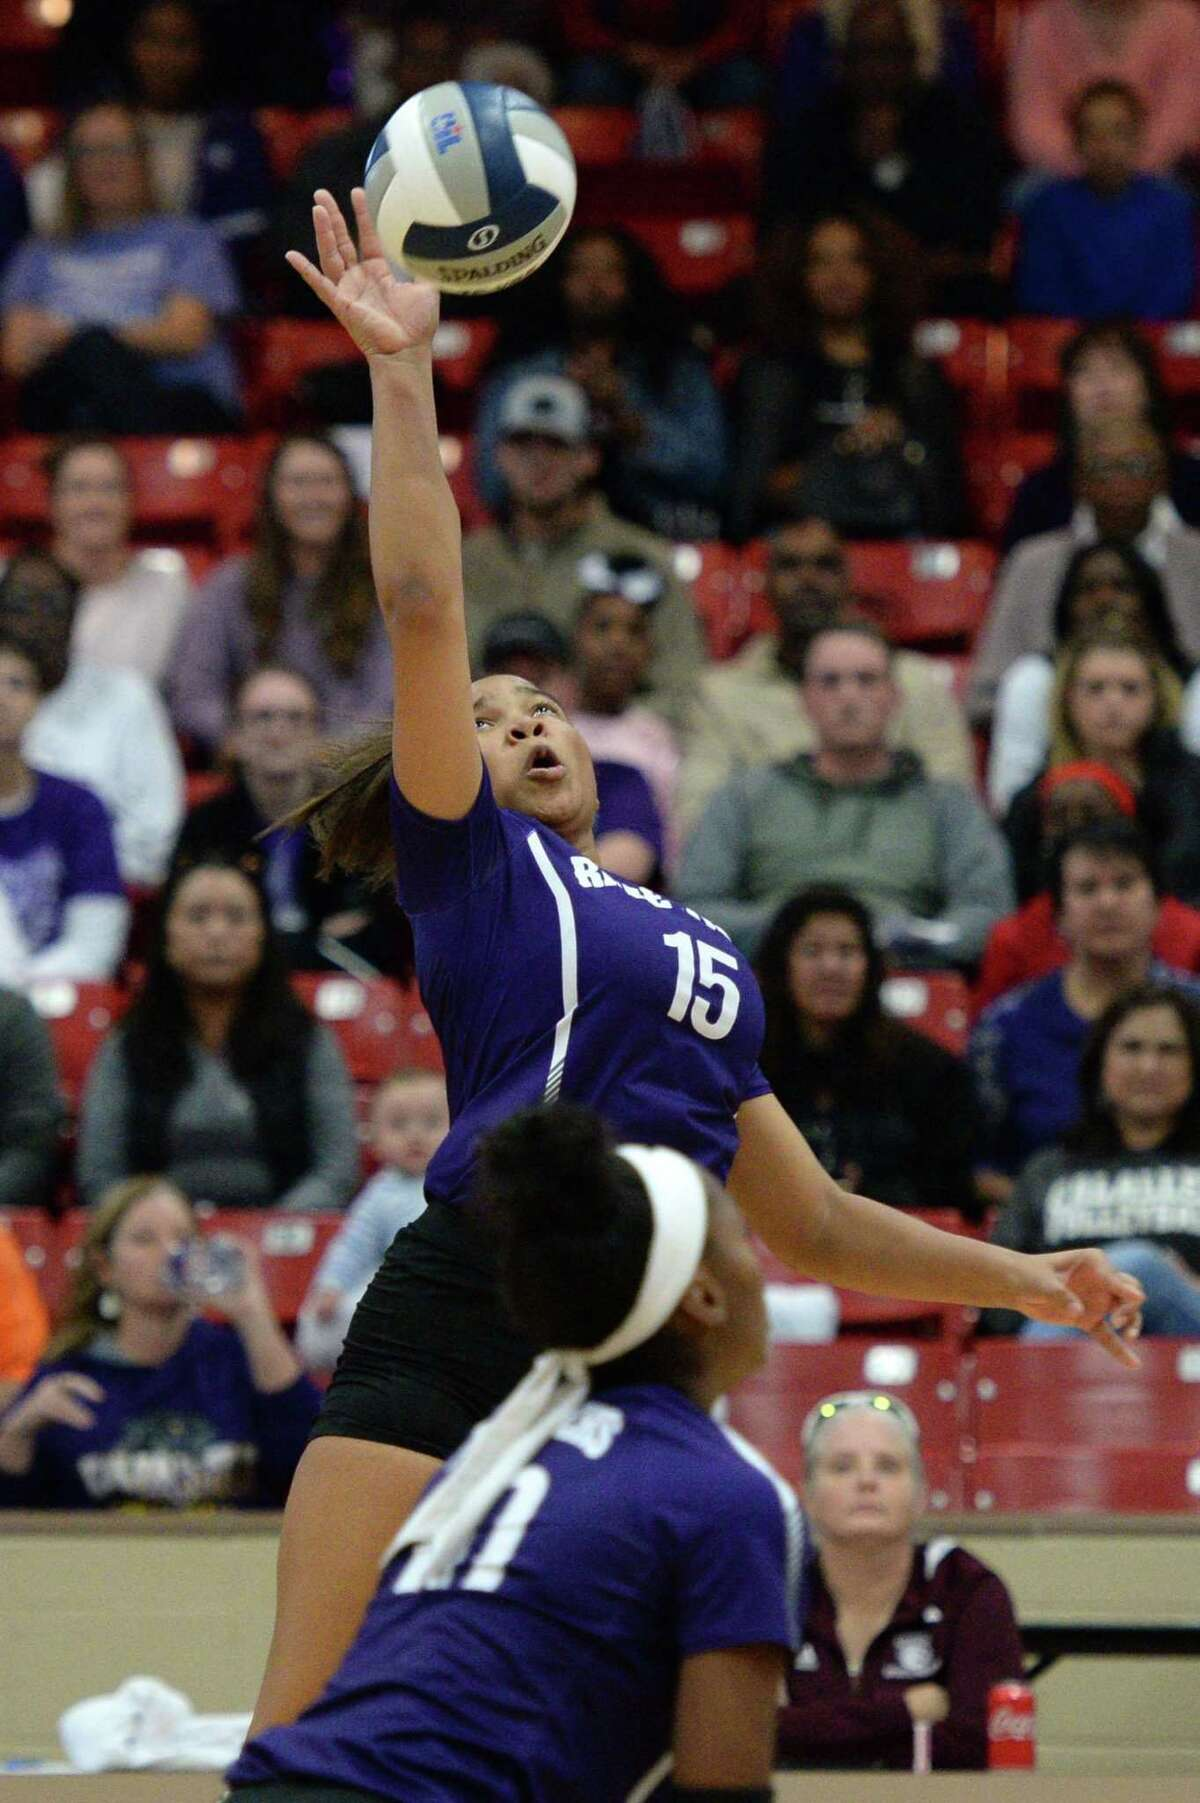 Lindsey Ogle (15) of Ridge Point hits a shot during the first set of the Region III-6A Final volleyball match between the Ridge Point Panthers and the Cy-Fair Bobcats on Saturday, November 16, 2019 at Wheeler Fieldhouse, Sugar Land, TX.